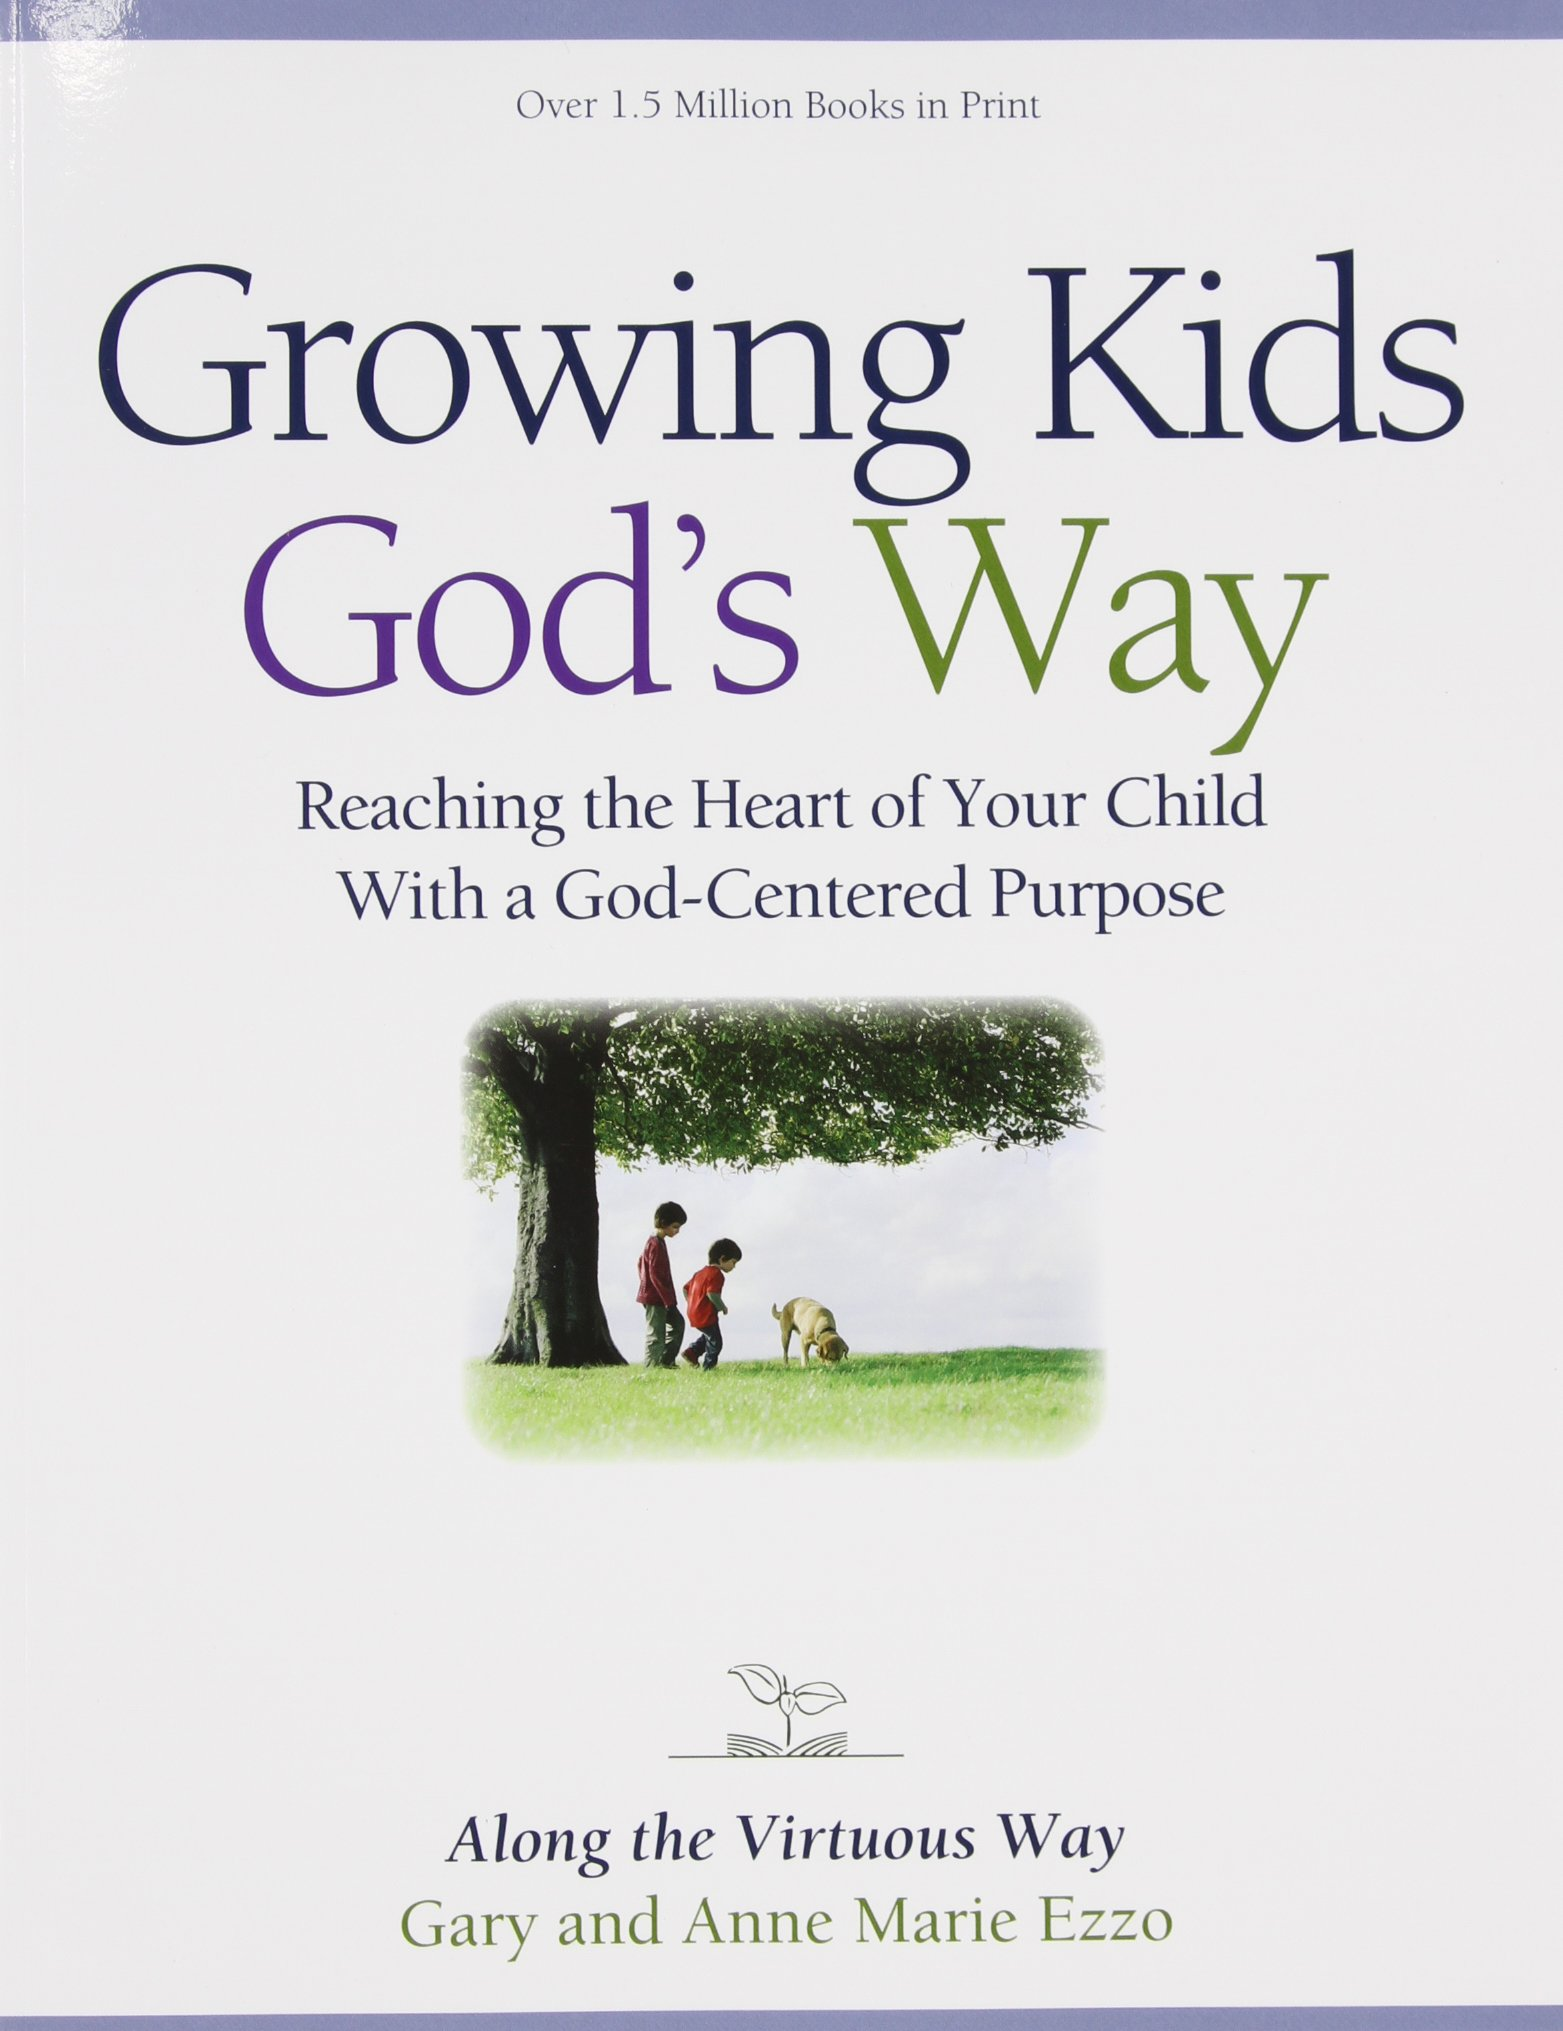 Growing Kids God's Way by Gary and Anne Marie Ezzo